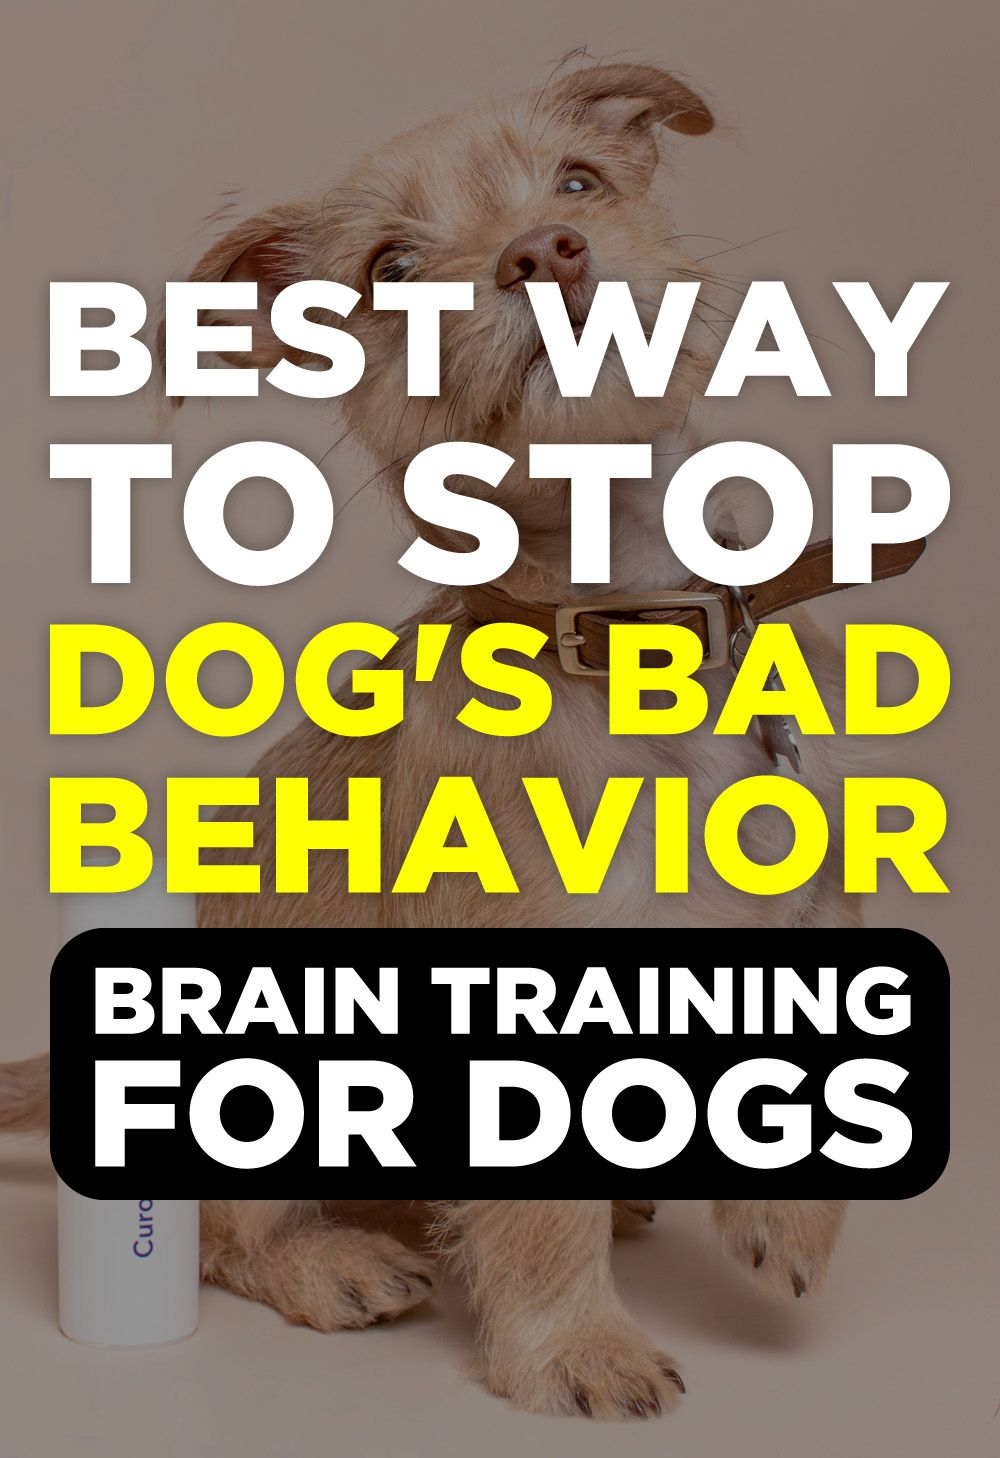 Brain training for dogs review puppy training schedule